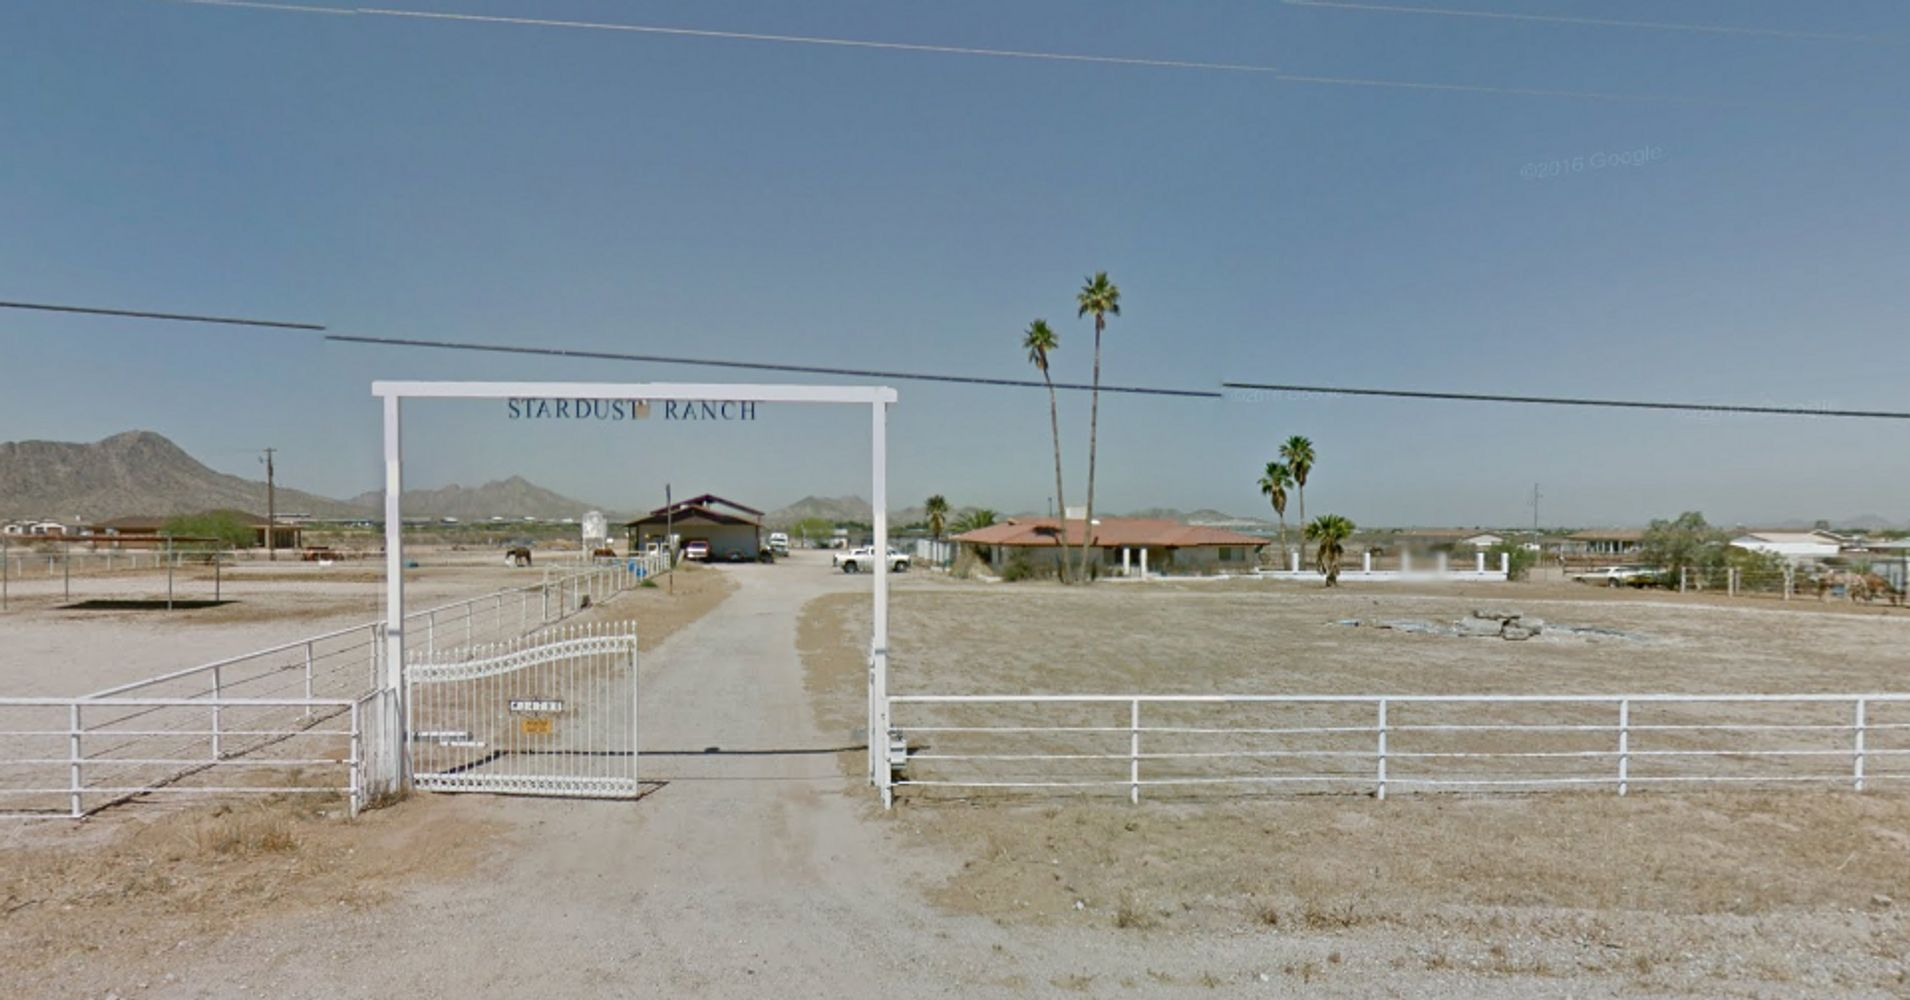 This 39 alien infested 39 desert ranch can be all yours for 5 million huffpost - Portal entree ownership ...